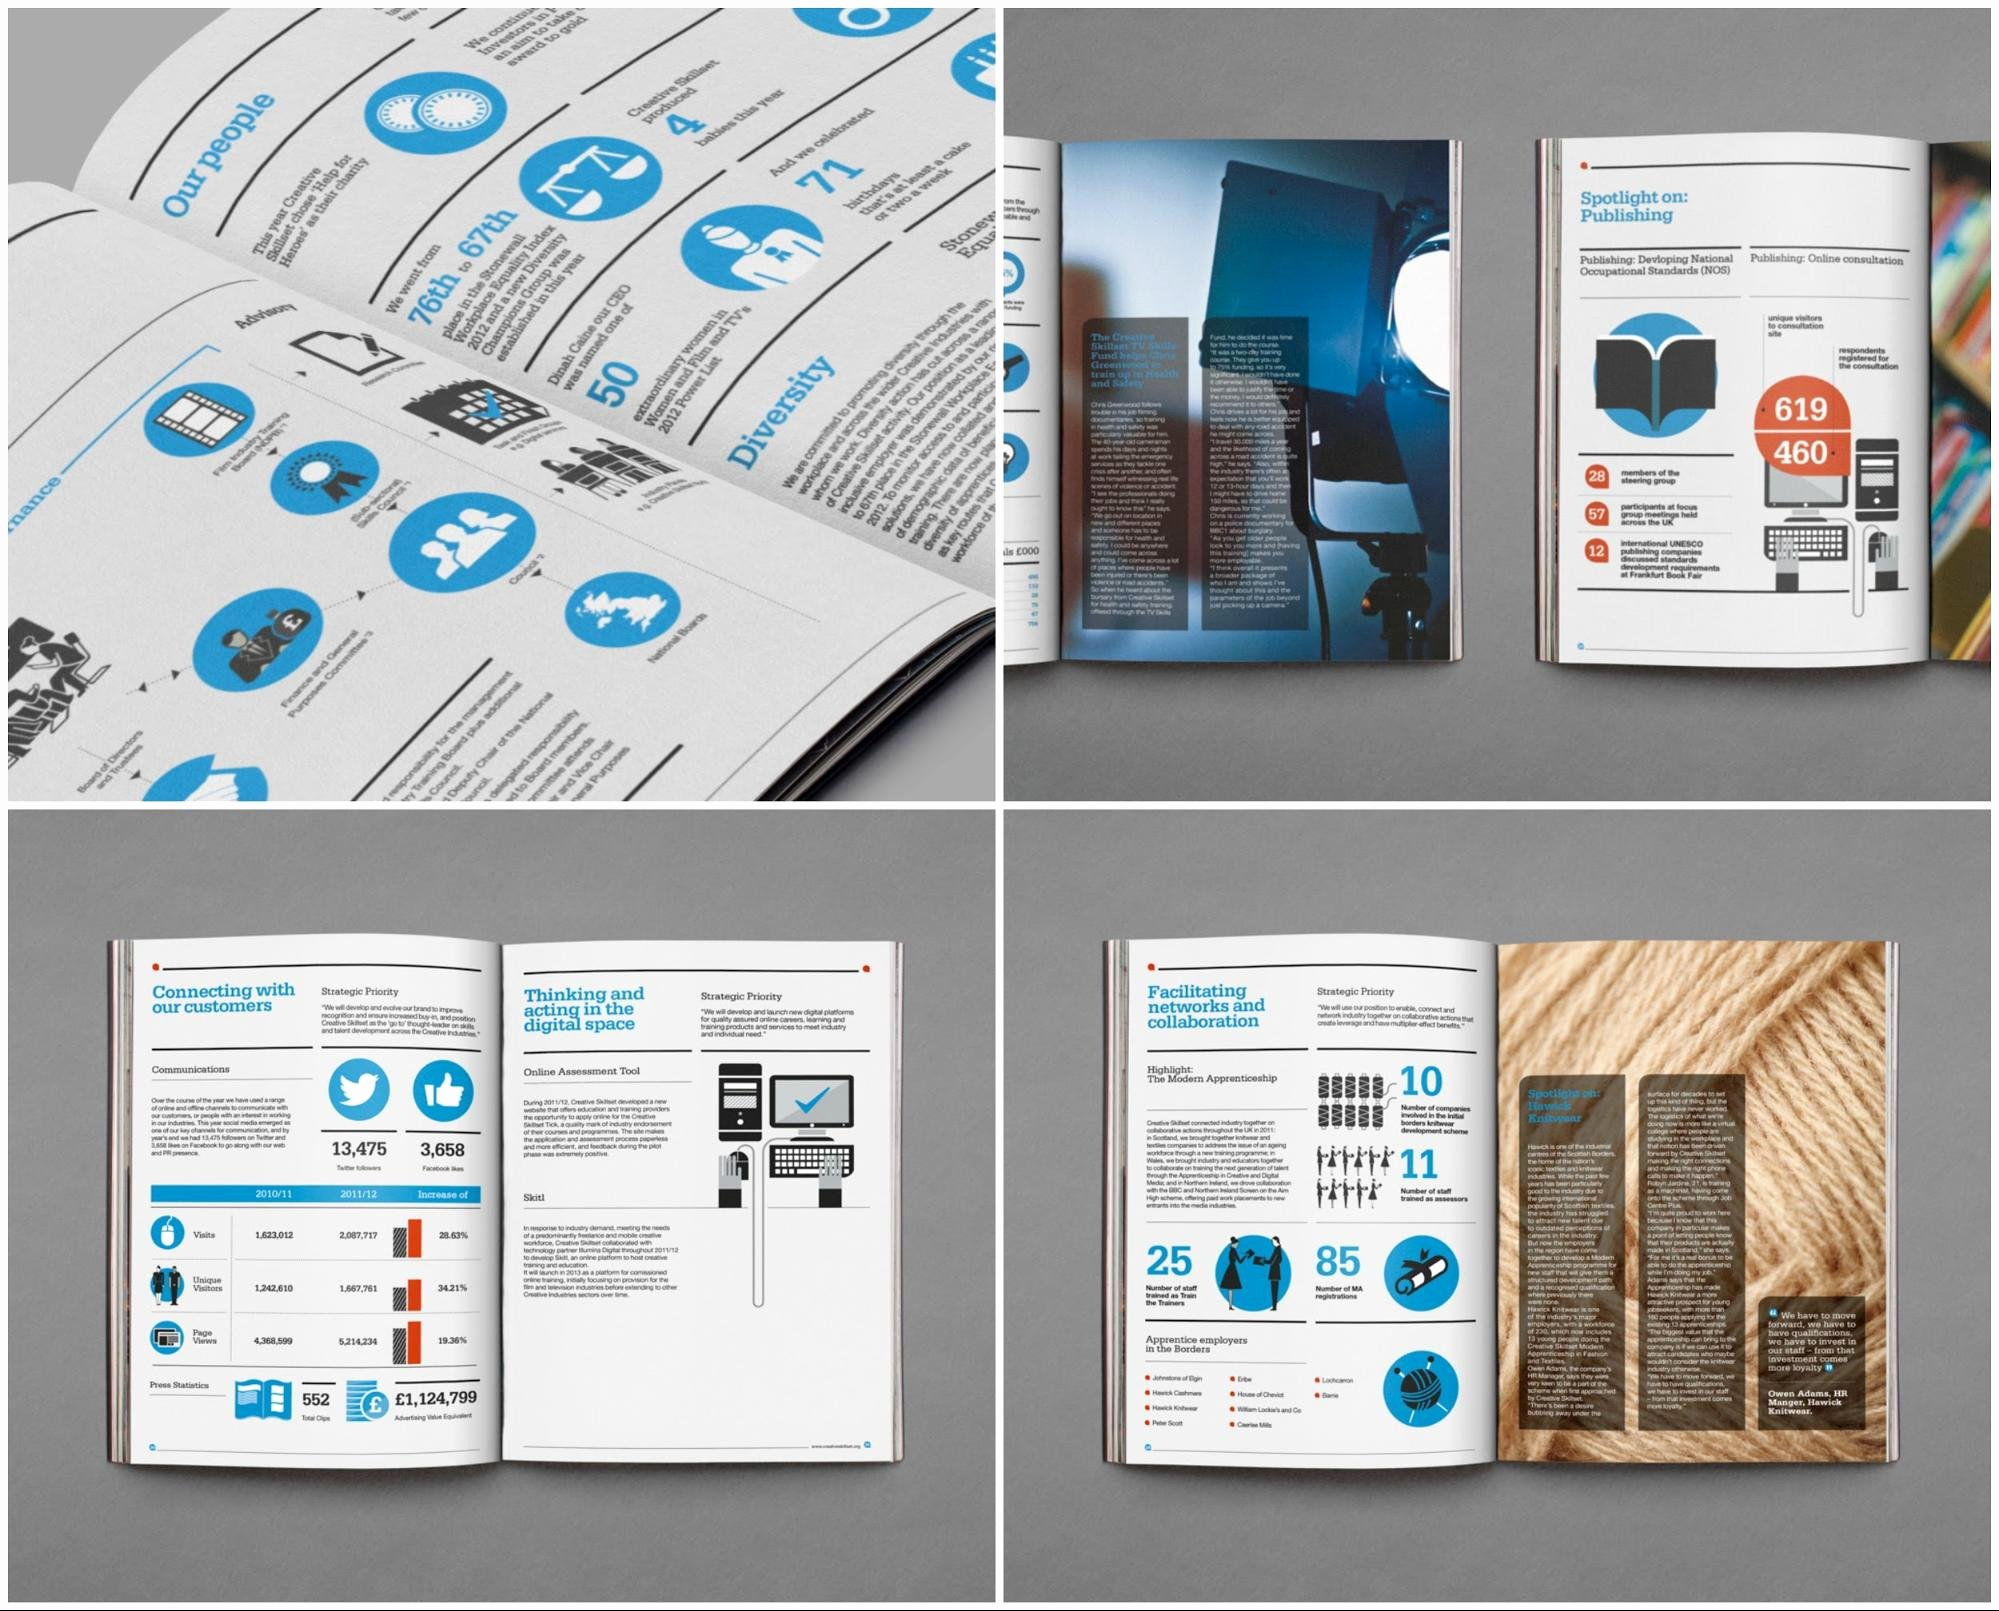 Annual Financial Report Template Inspirational 55 Customizable Annual Report Templates Examples & Tips